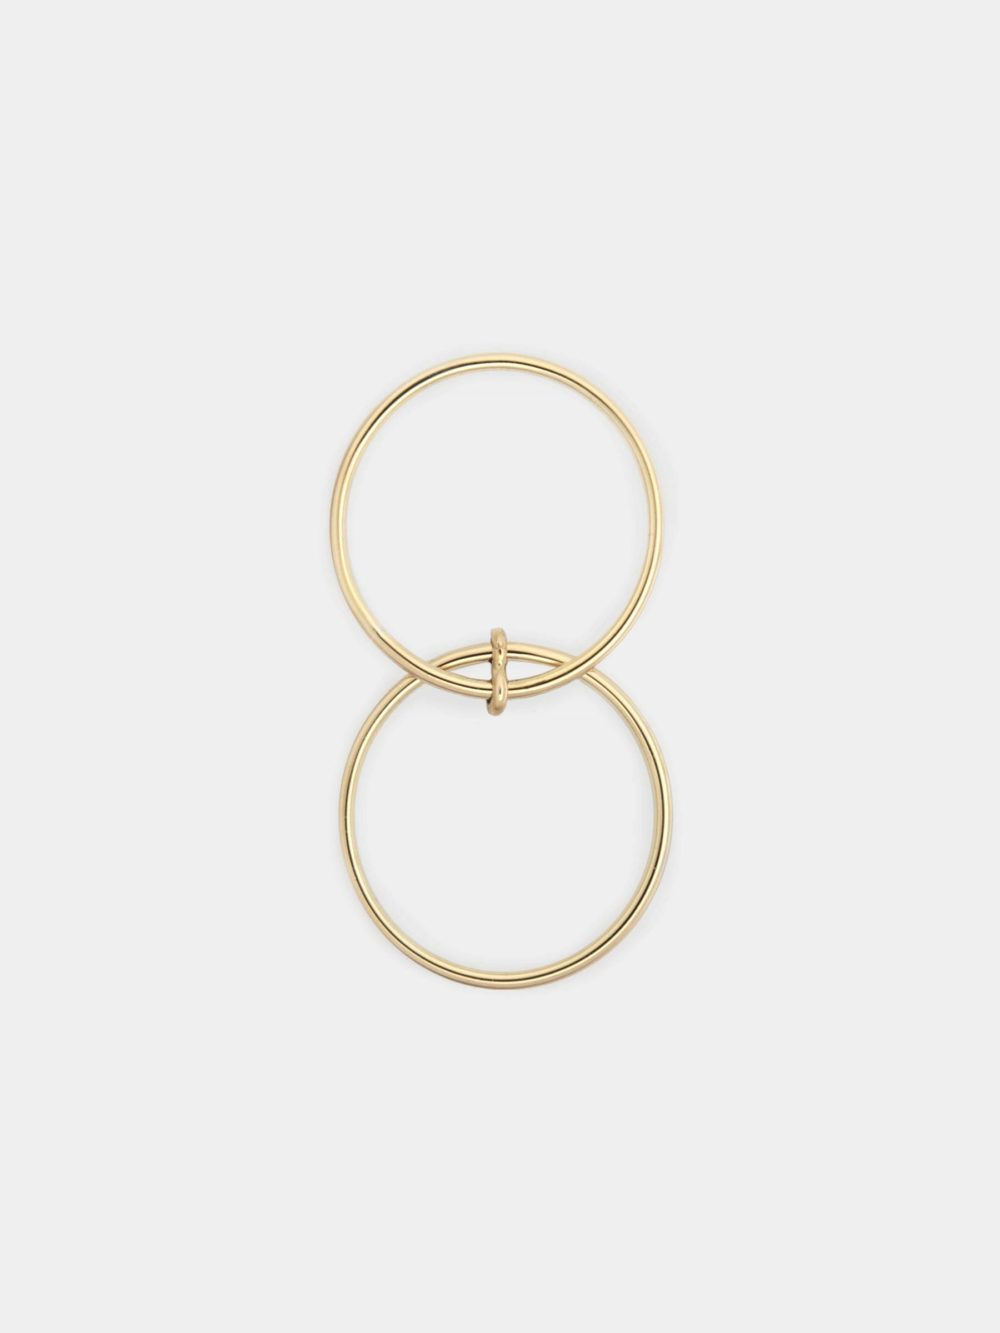 BEPART DOUBLE FINGER RING Handmade in Bepart studio in Slovakia, the Double finger ring from Circle collection is geometric, pure but modern take on minimal ring.